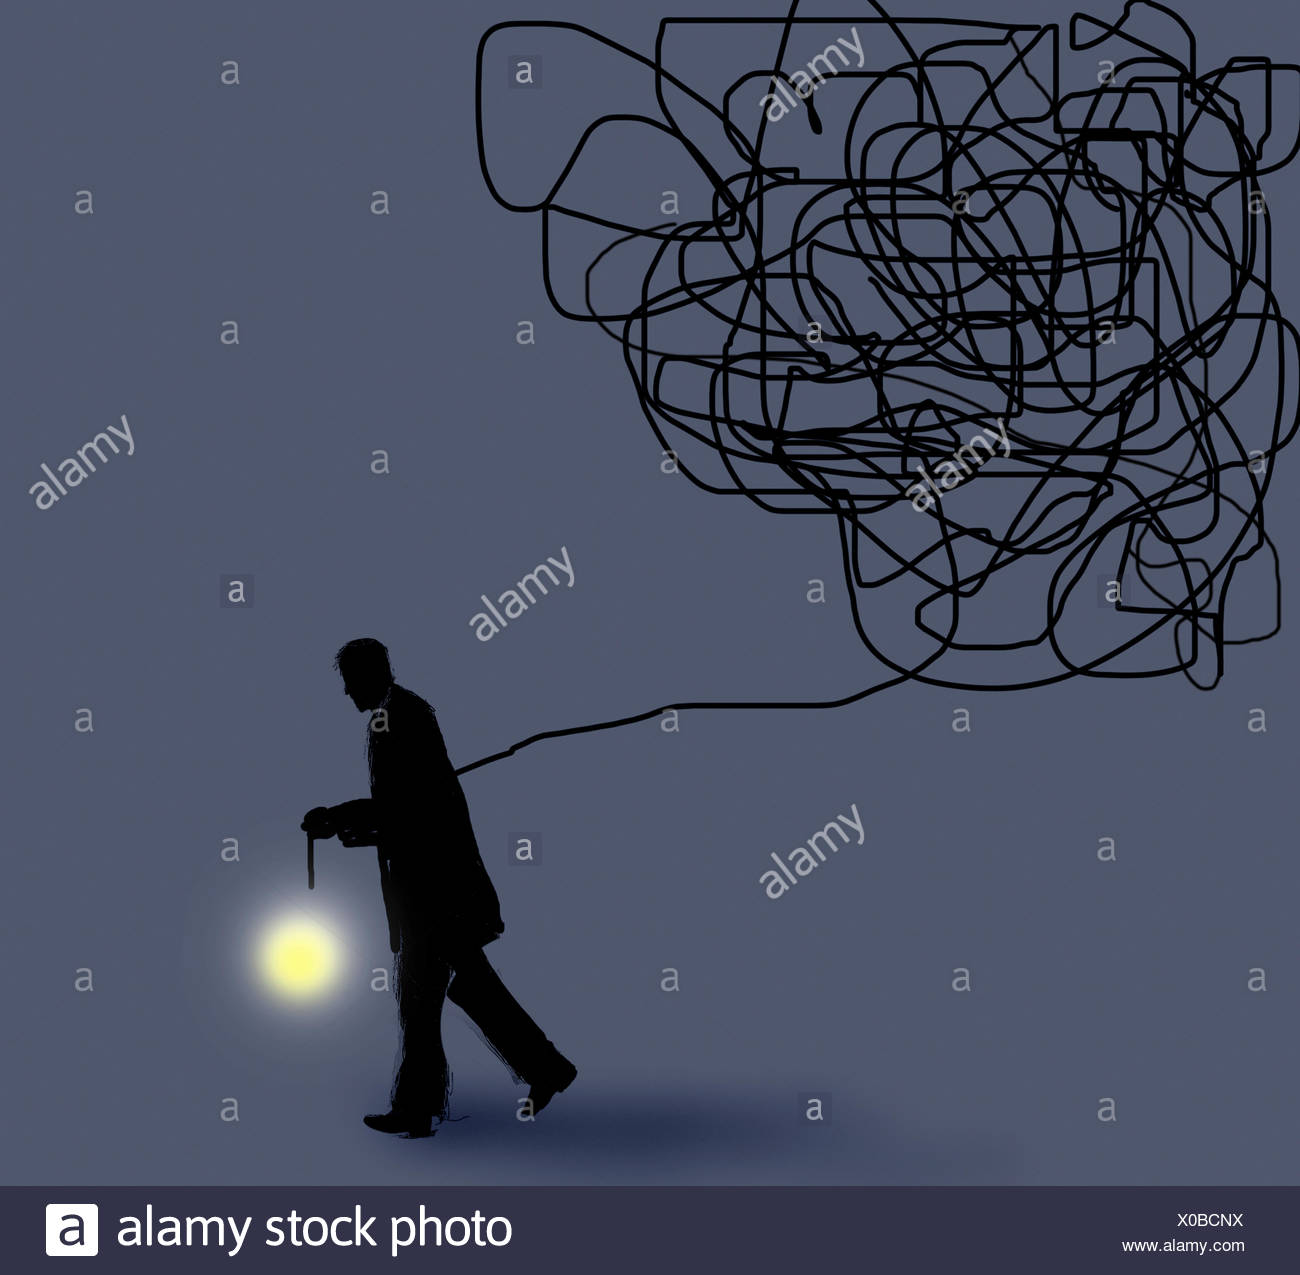 Illuminating Wire Stock Photos Images Alamy Subaru Interior Illumination Wiring Businessman Shining Light From The End Of Tangled Image